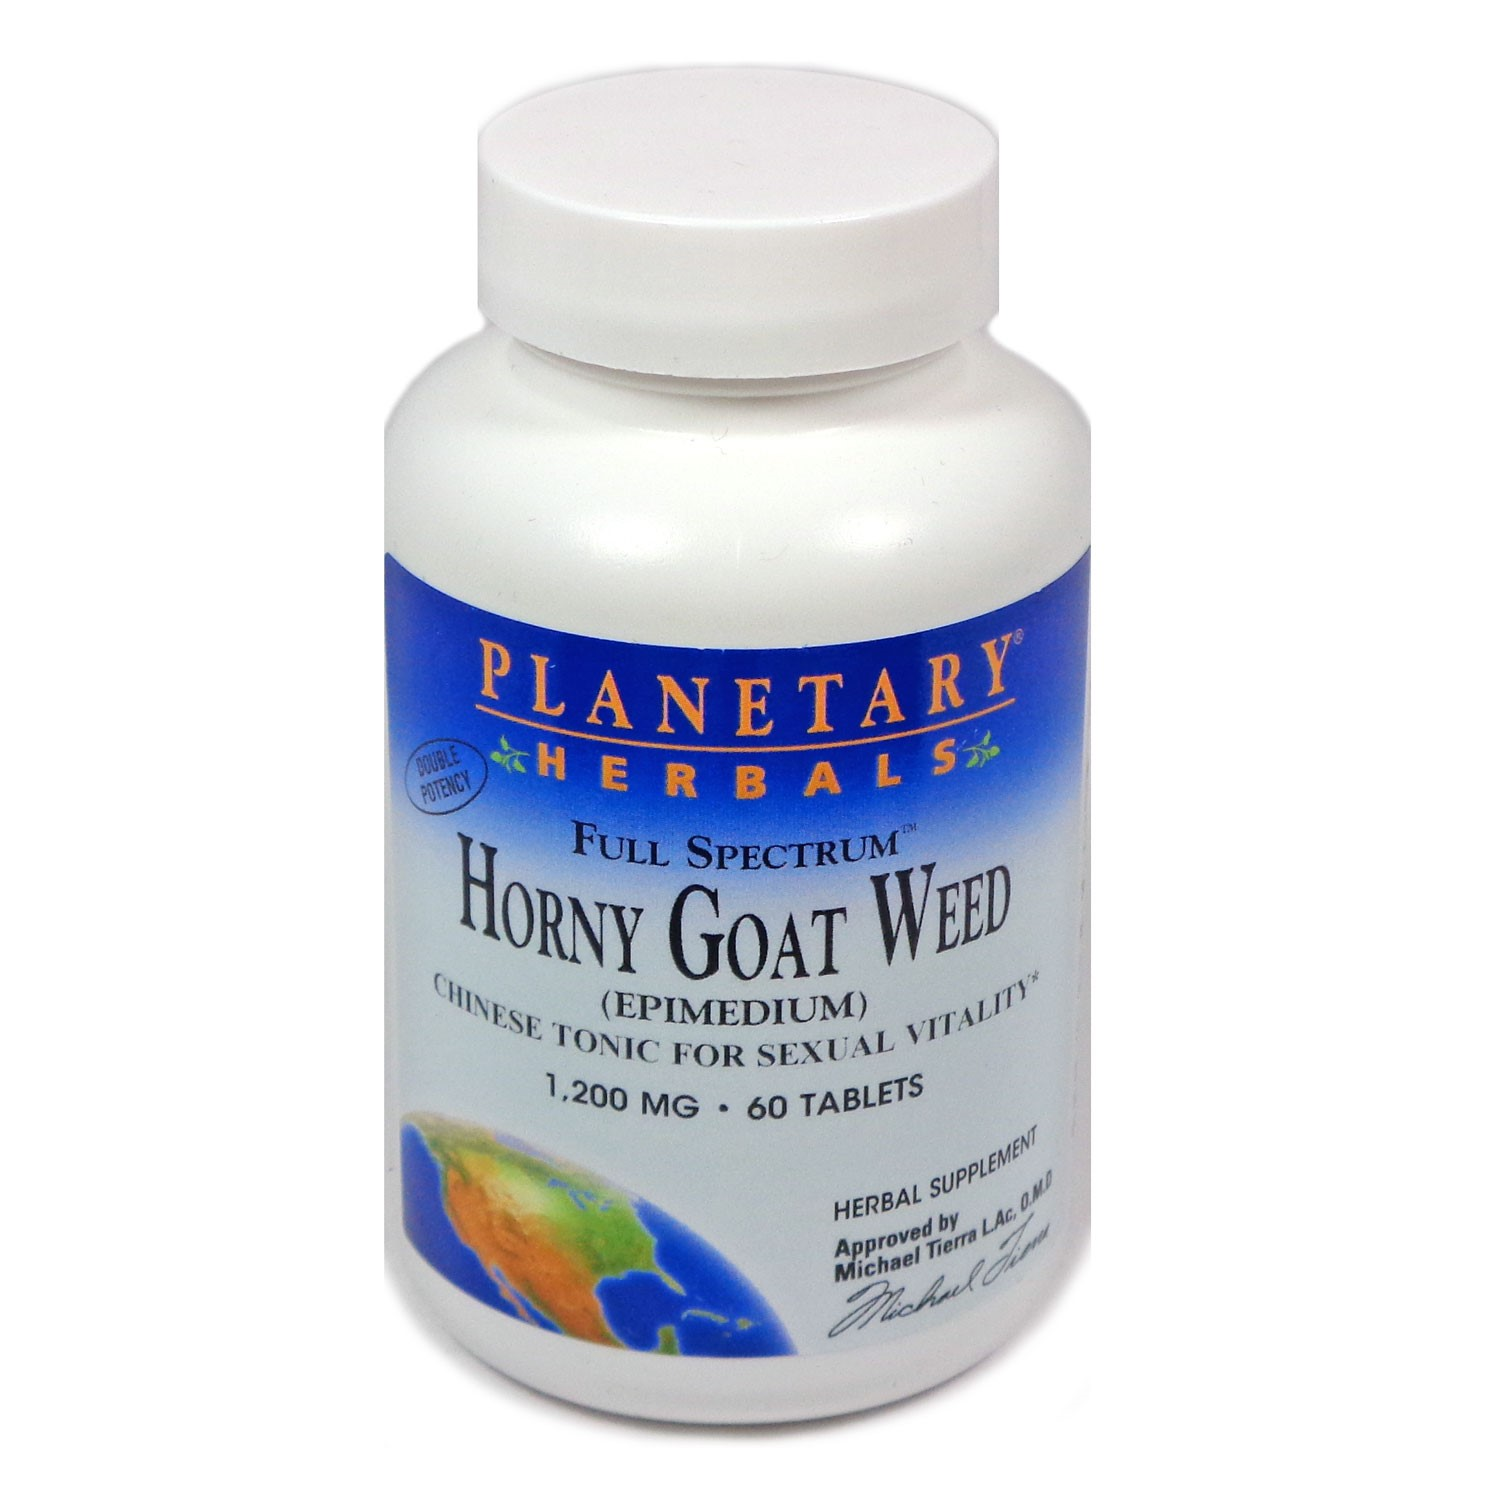 Planetary Herbals Full Spectrum Horny Goat Weed 1200mg, 60 tablets